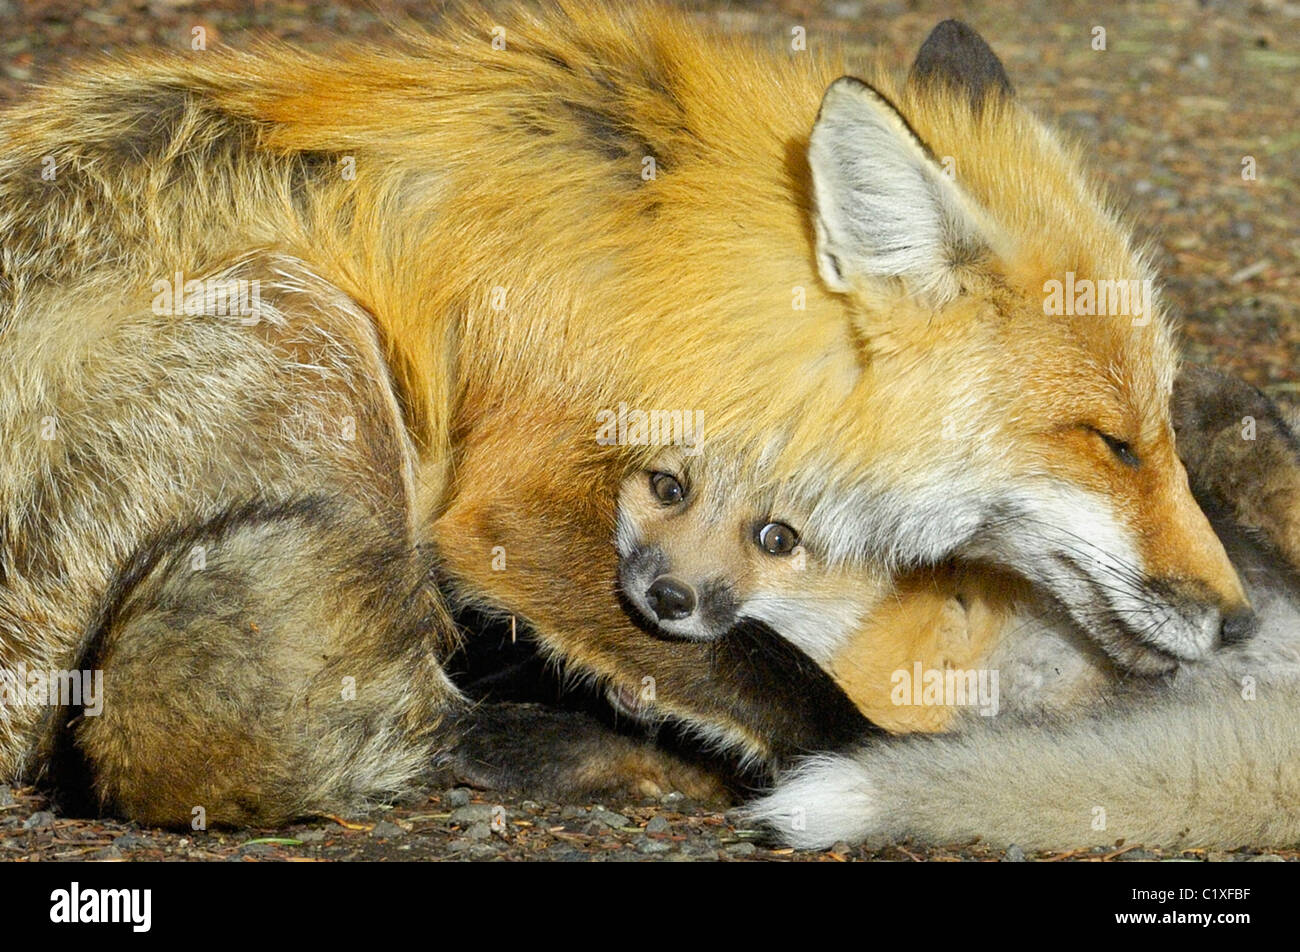 Red Fox Mother Nursing Kits Royalty Free Stock Images - Image ...